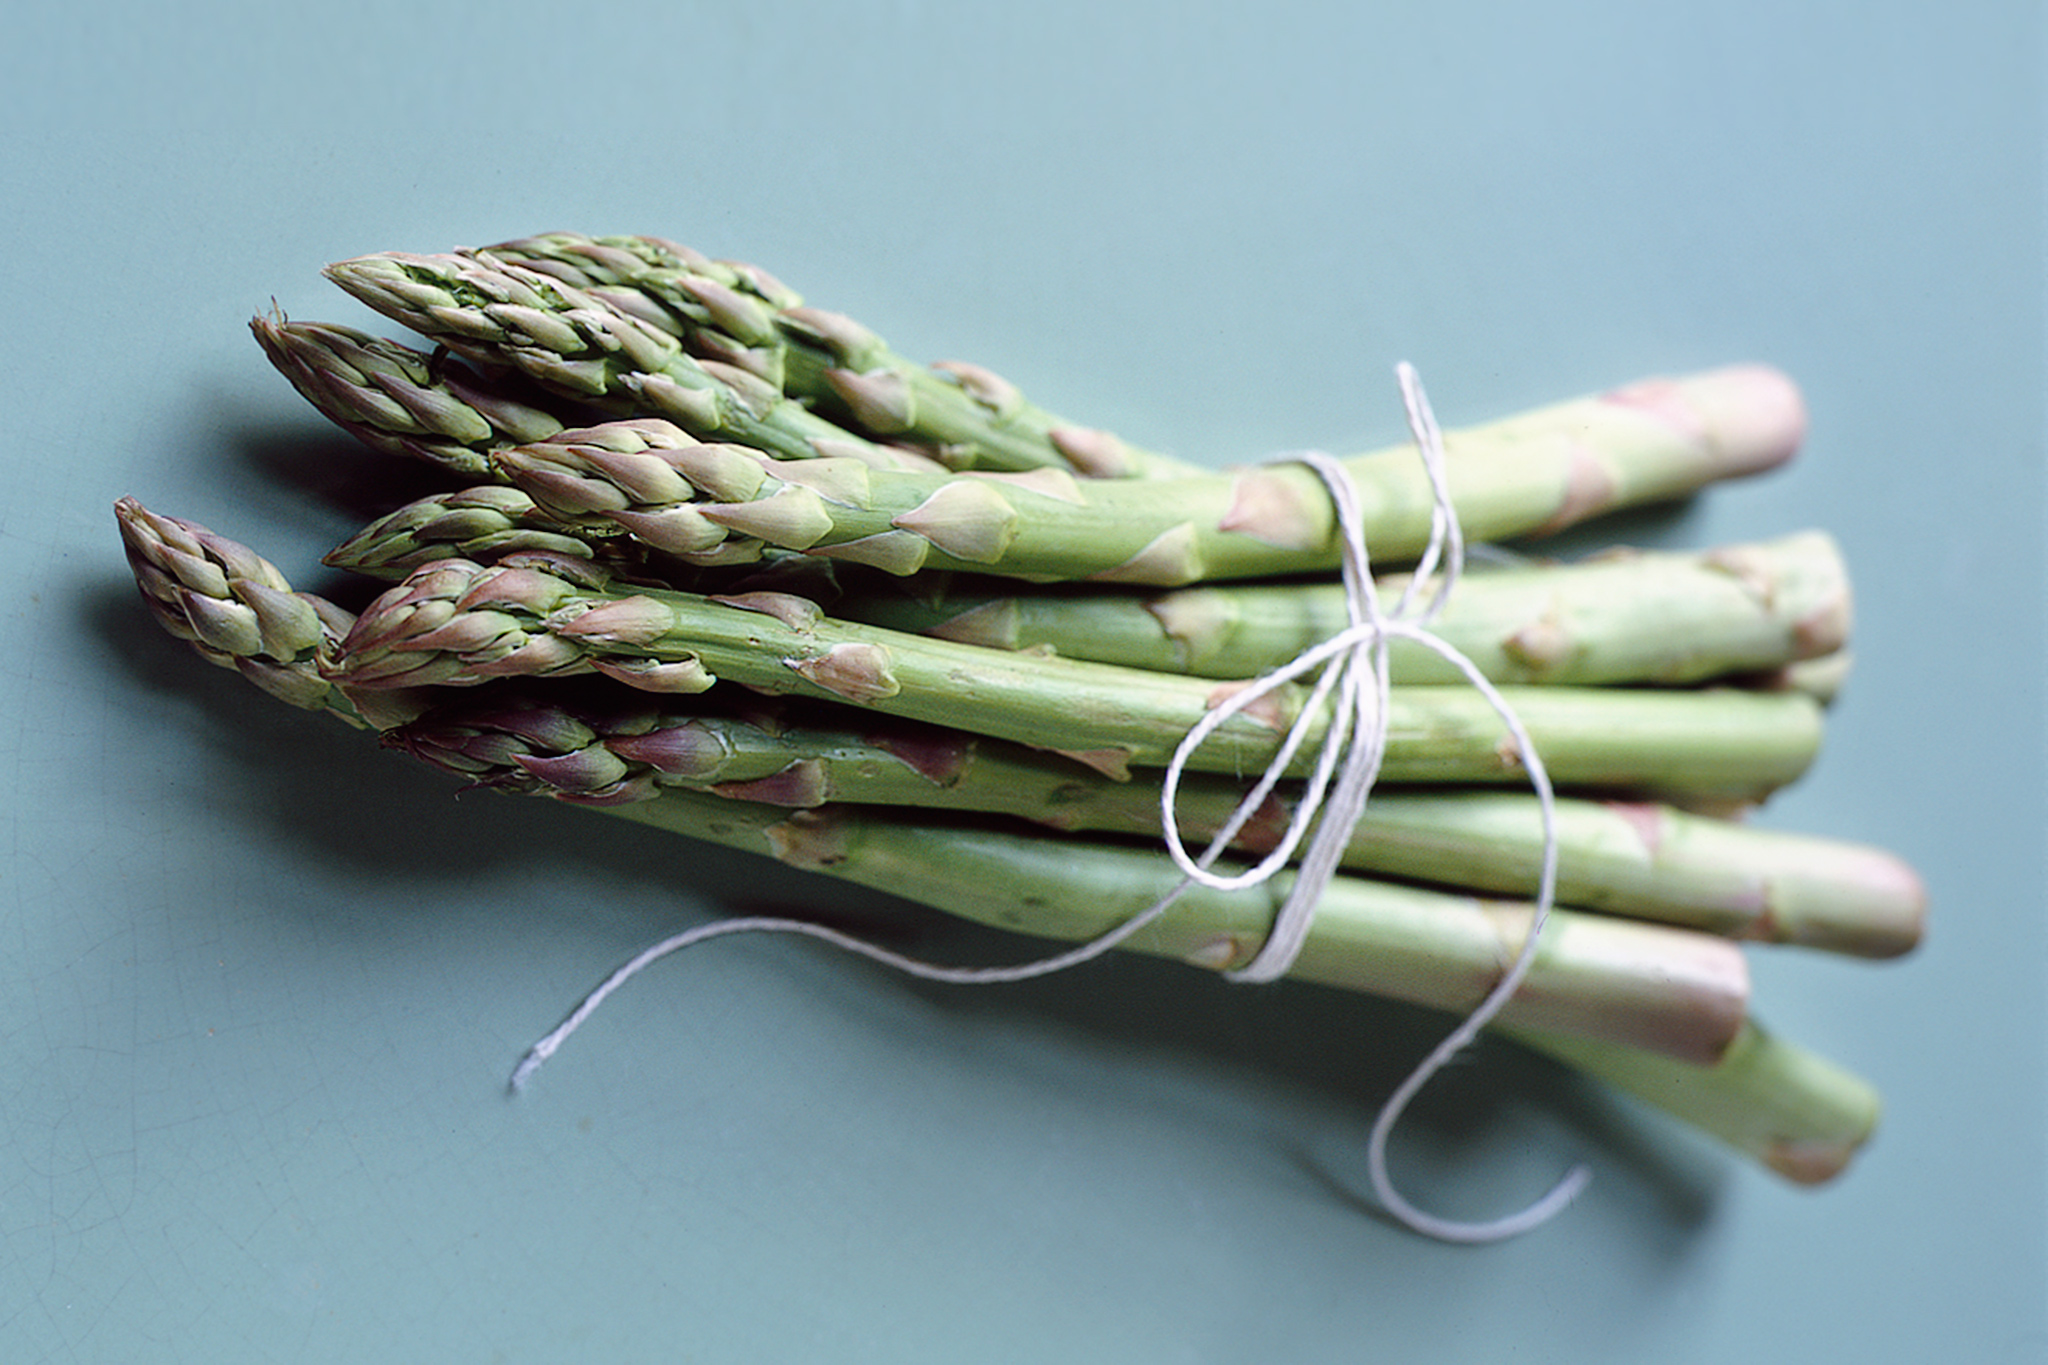 Asparagus. Photo by Simon Walton, courtesy of BBC Good Food Magazine and www.bbcgoodfood.com